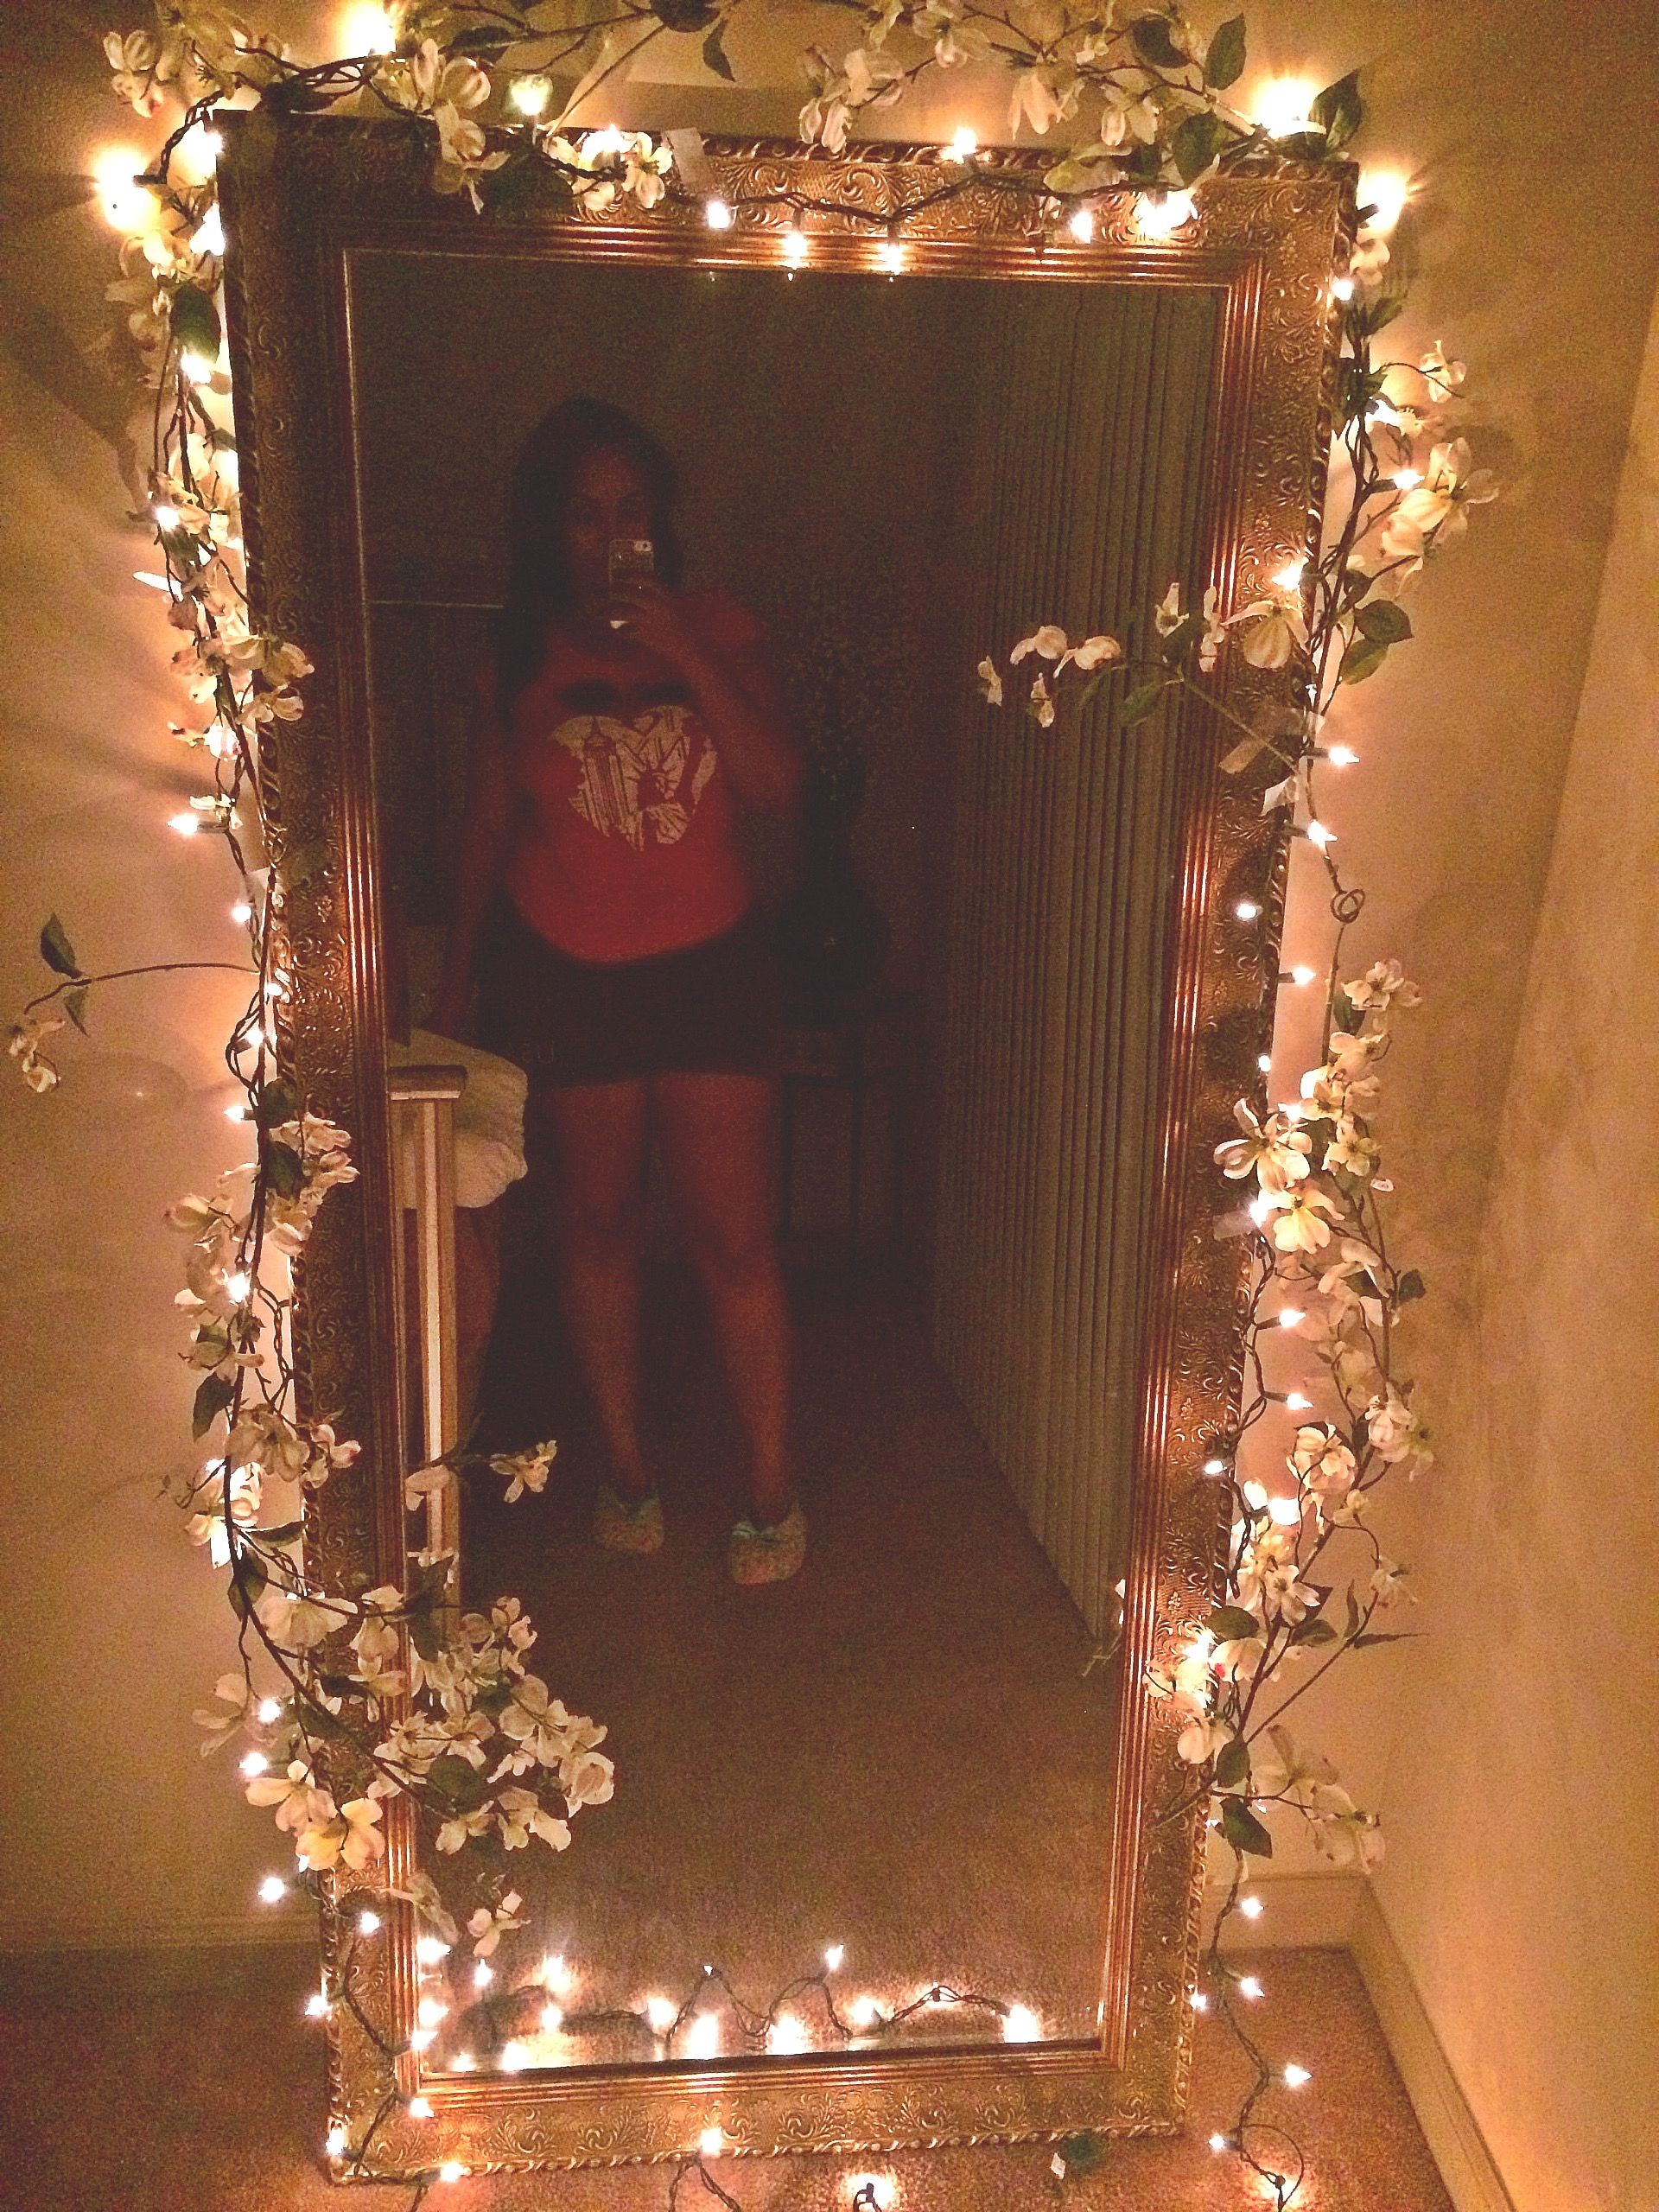 Added Some Fake Flowers And Strings Lights Around A Very Large Mirror 💜 With Images Diy